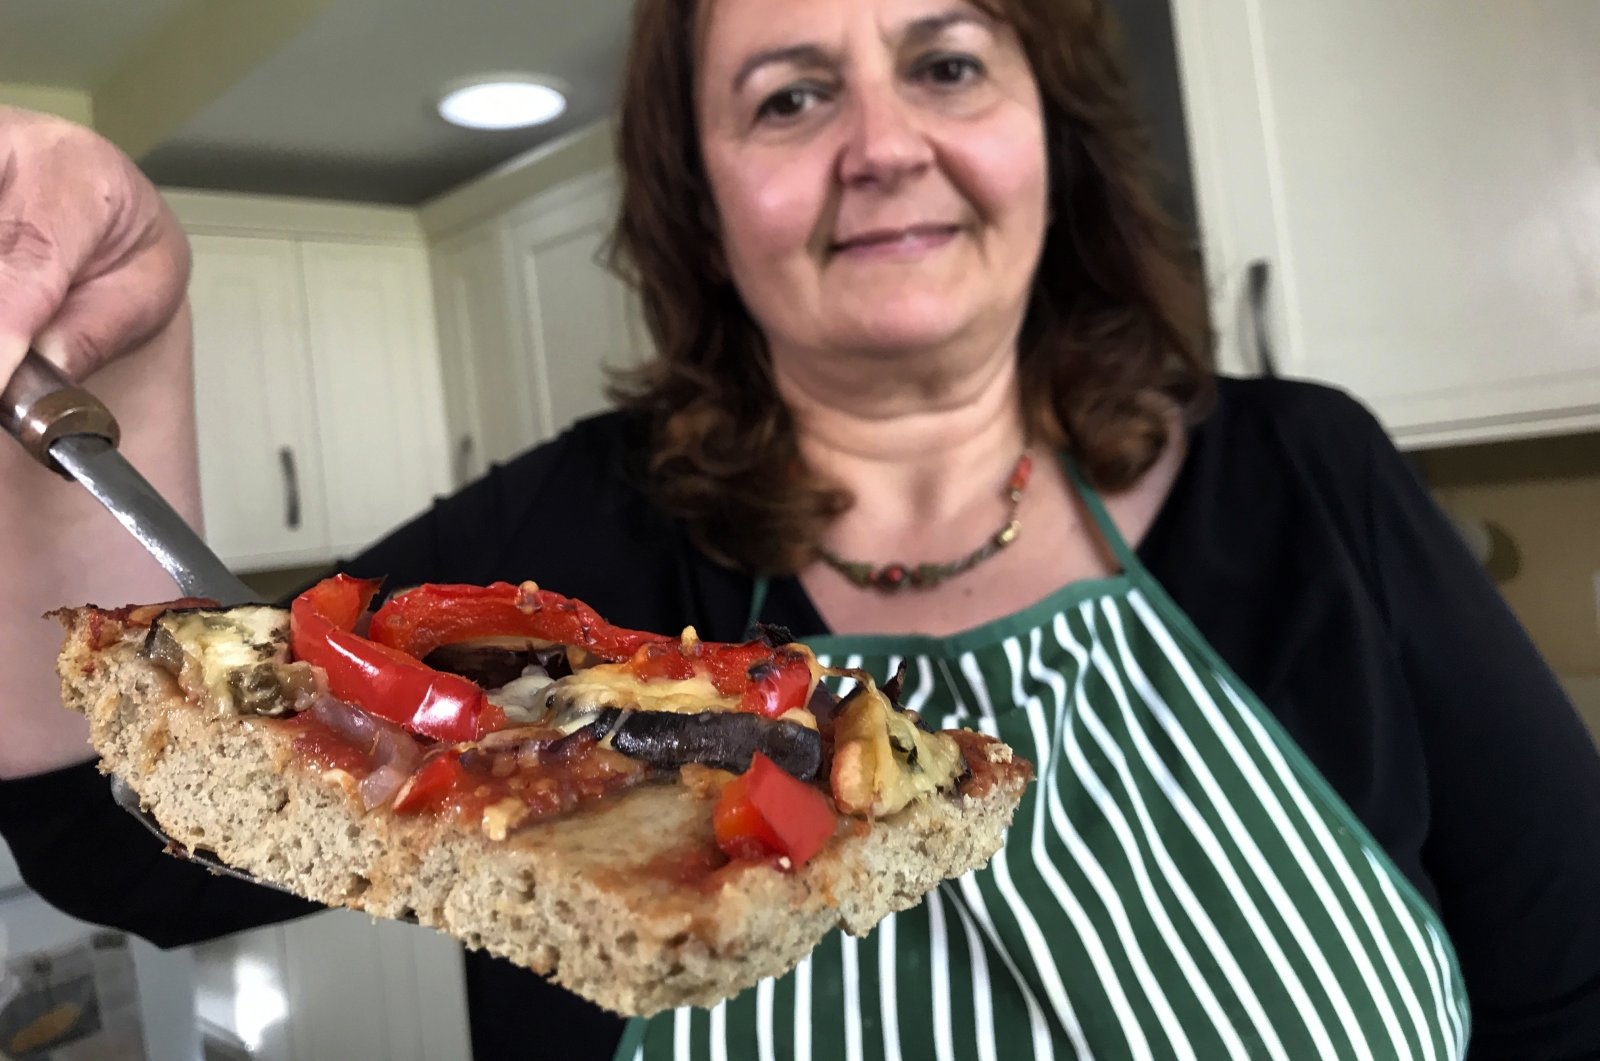 Tiziana di Costanzo, co-founder of Horizon Insects, holds up a slice of pizza made with cricket powder, in her London kitchen, London, U.K., June 2, 2021. (AP Photo)